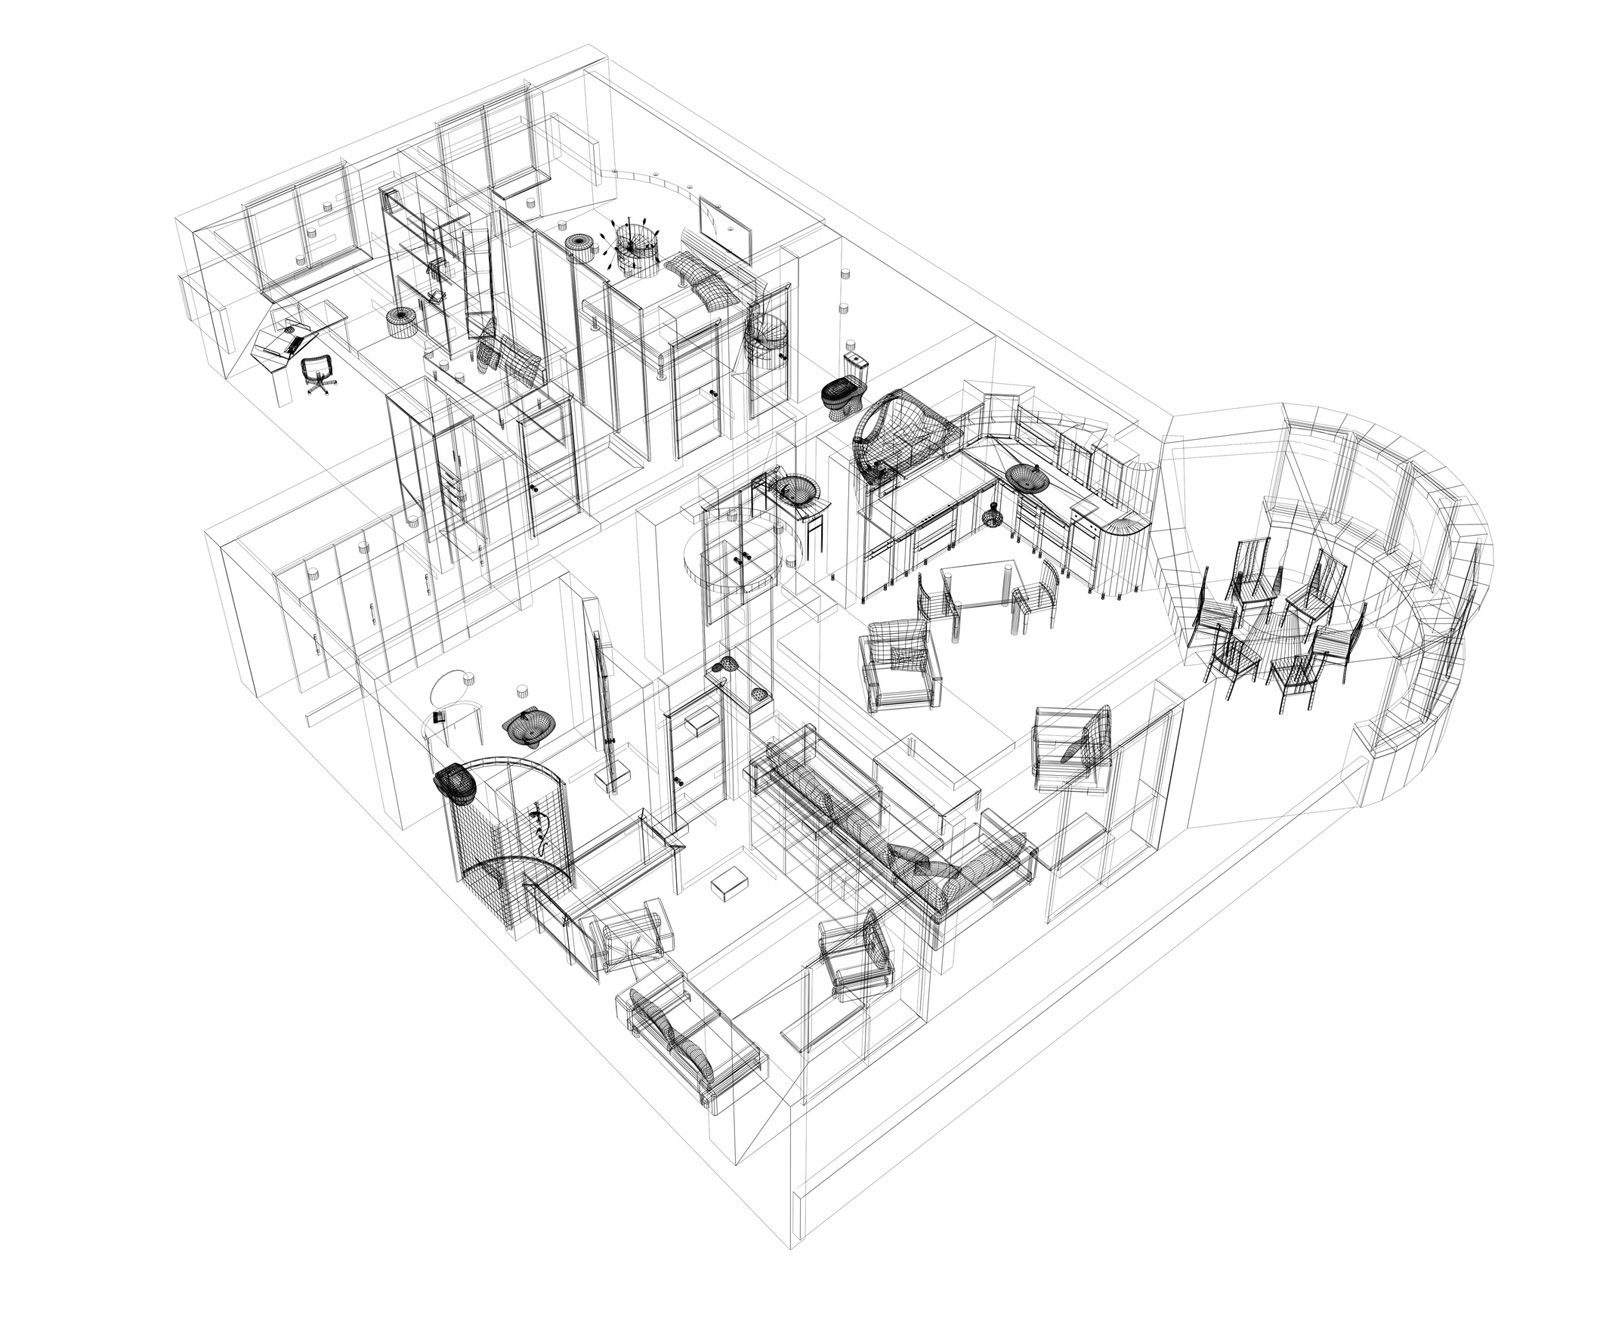 Good 3d Building Scheme And Floor Plans Ideas For House